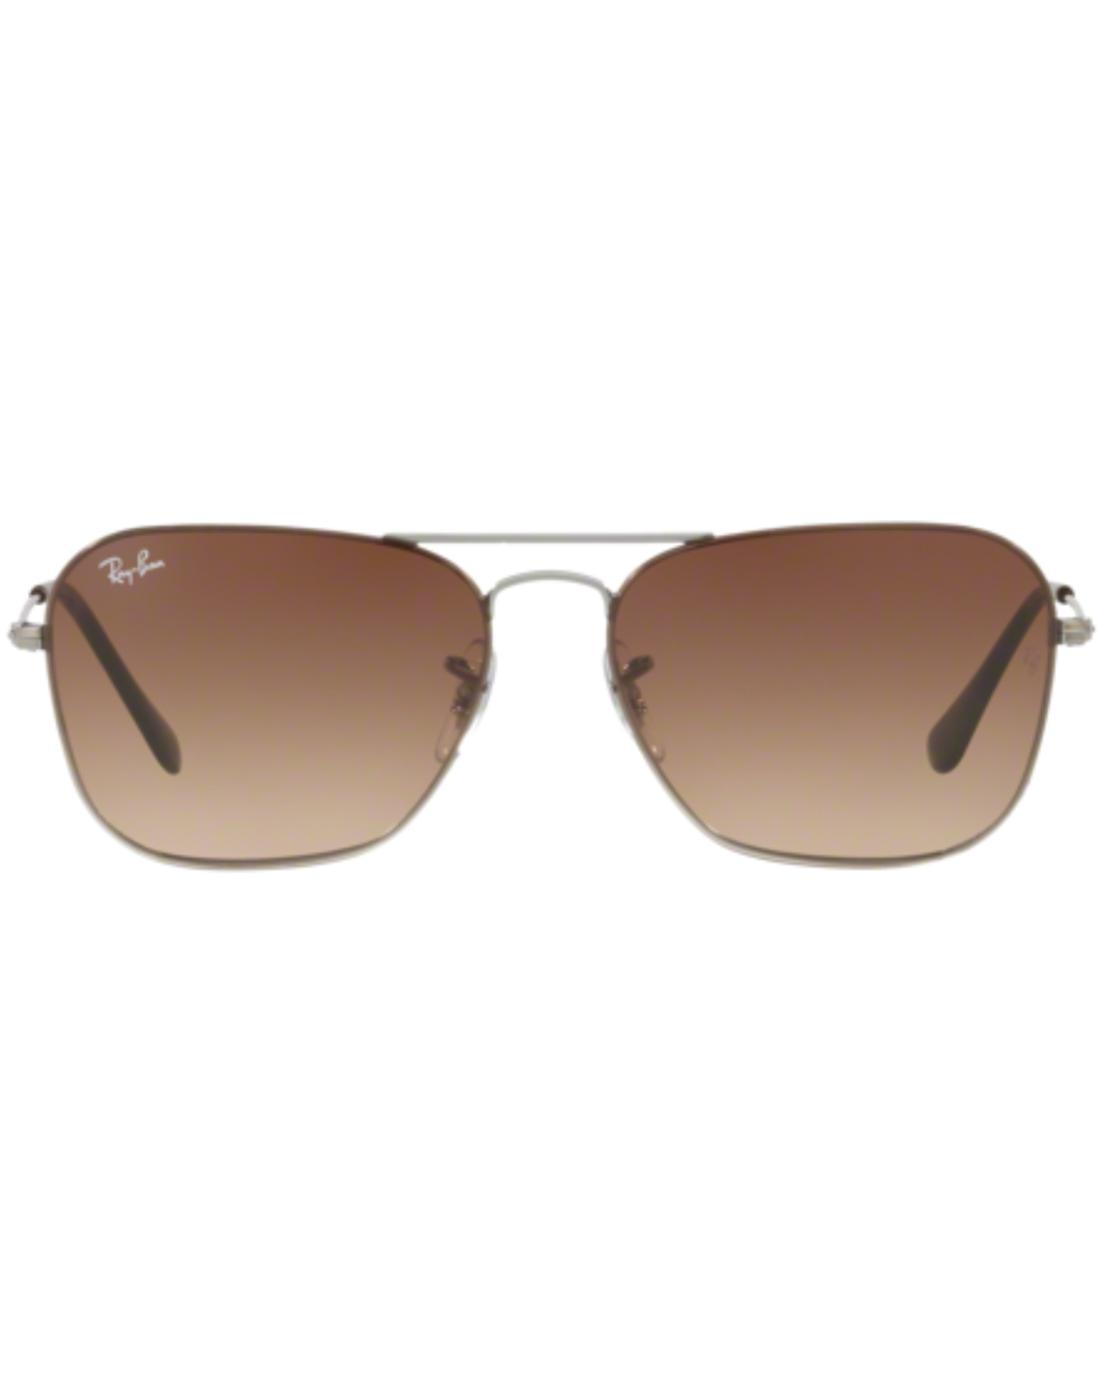 RAY-BAN Retro 70s Mod Small Caravan Sunglasses B